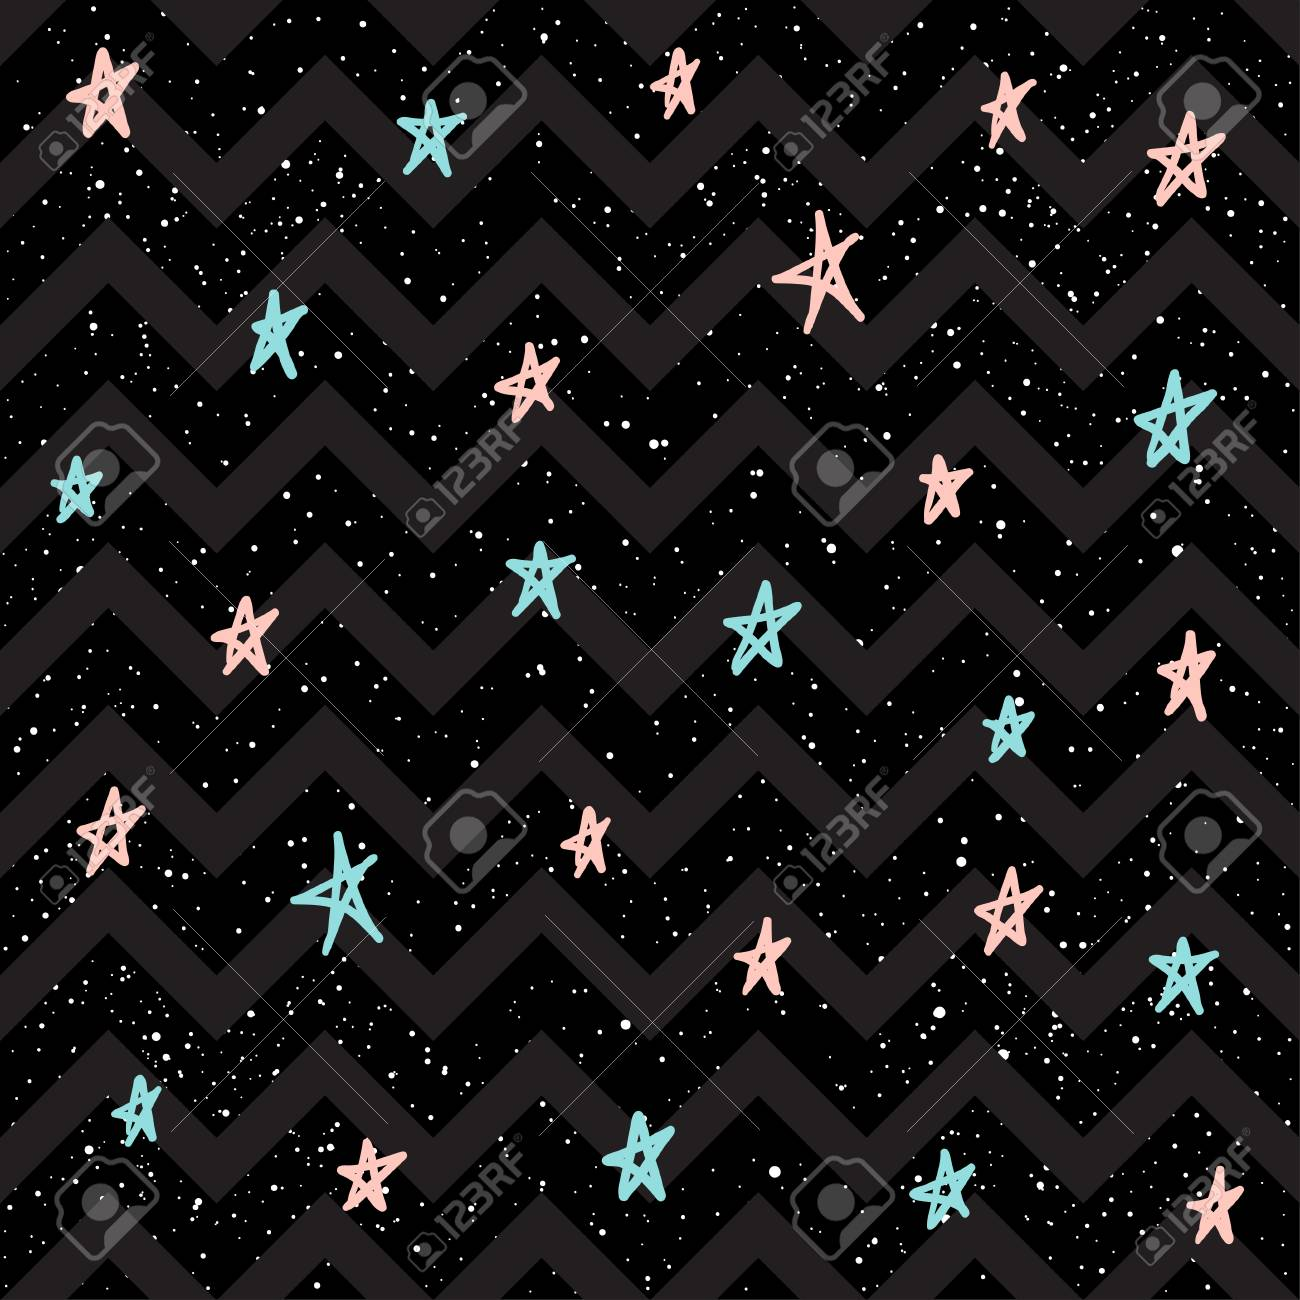 Pastel Star On Black Seamless Background Pink White And Blue